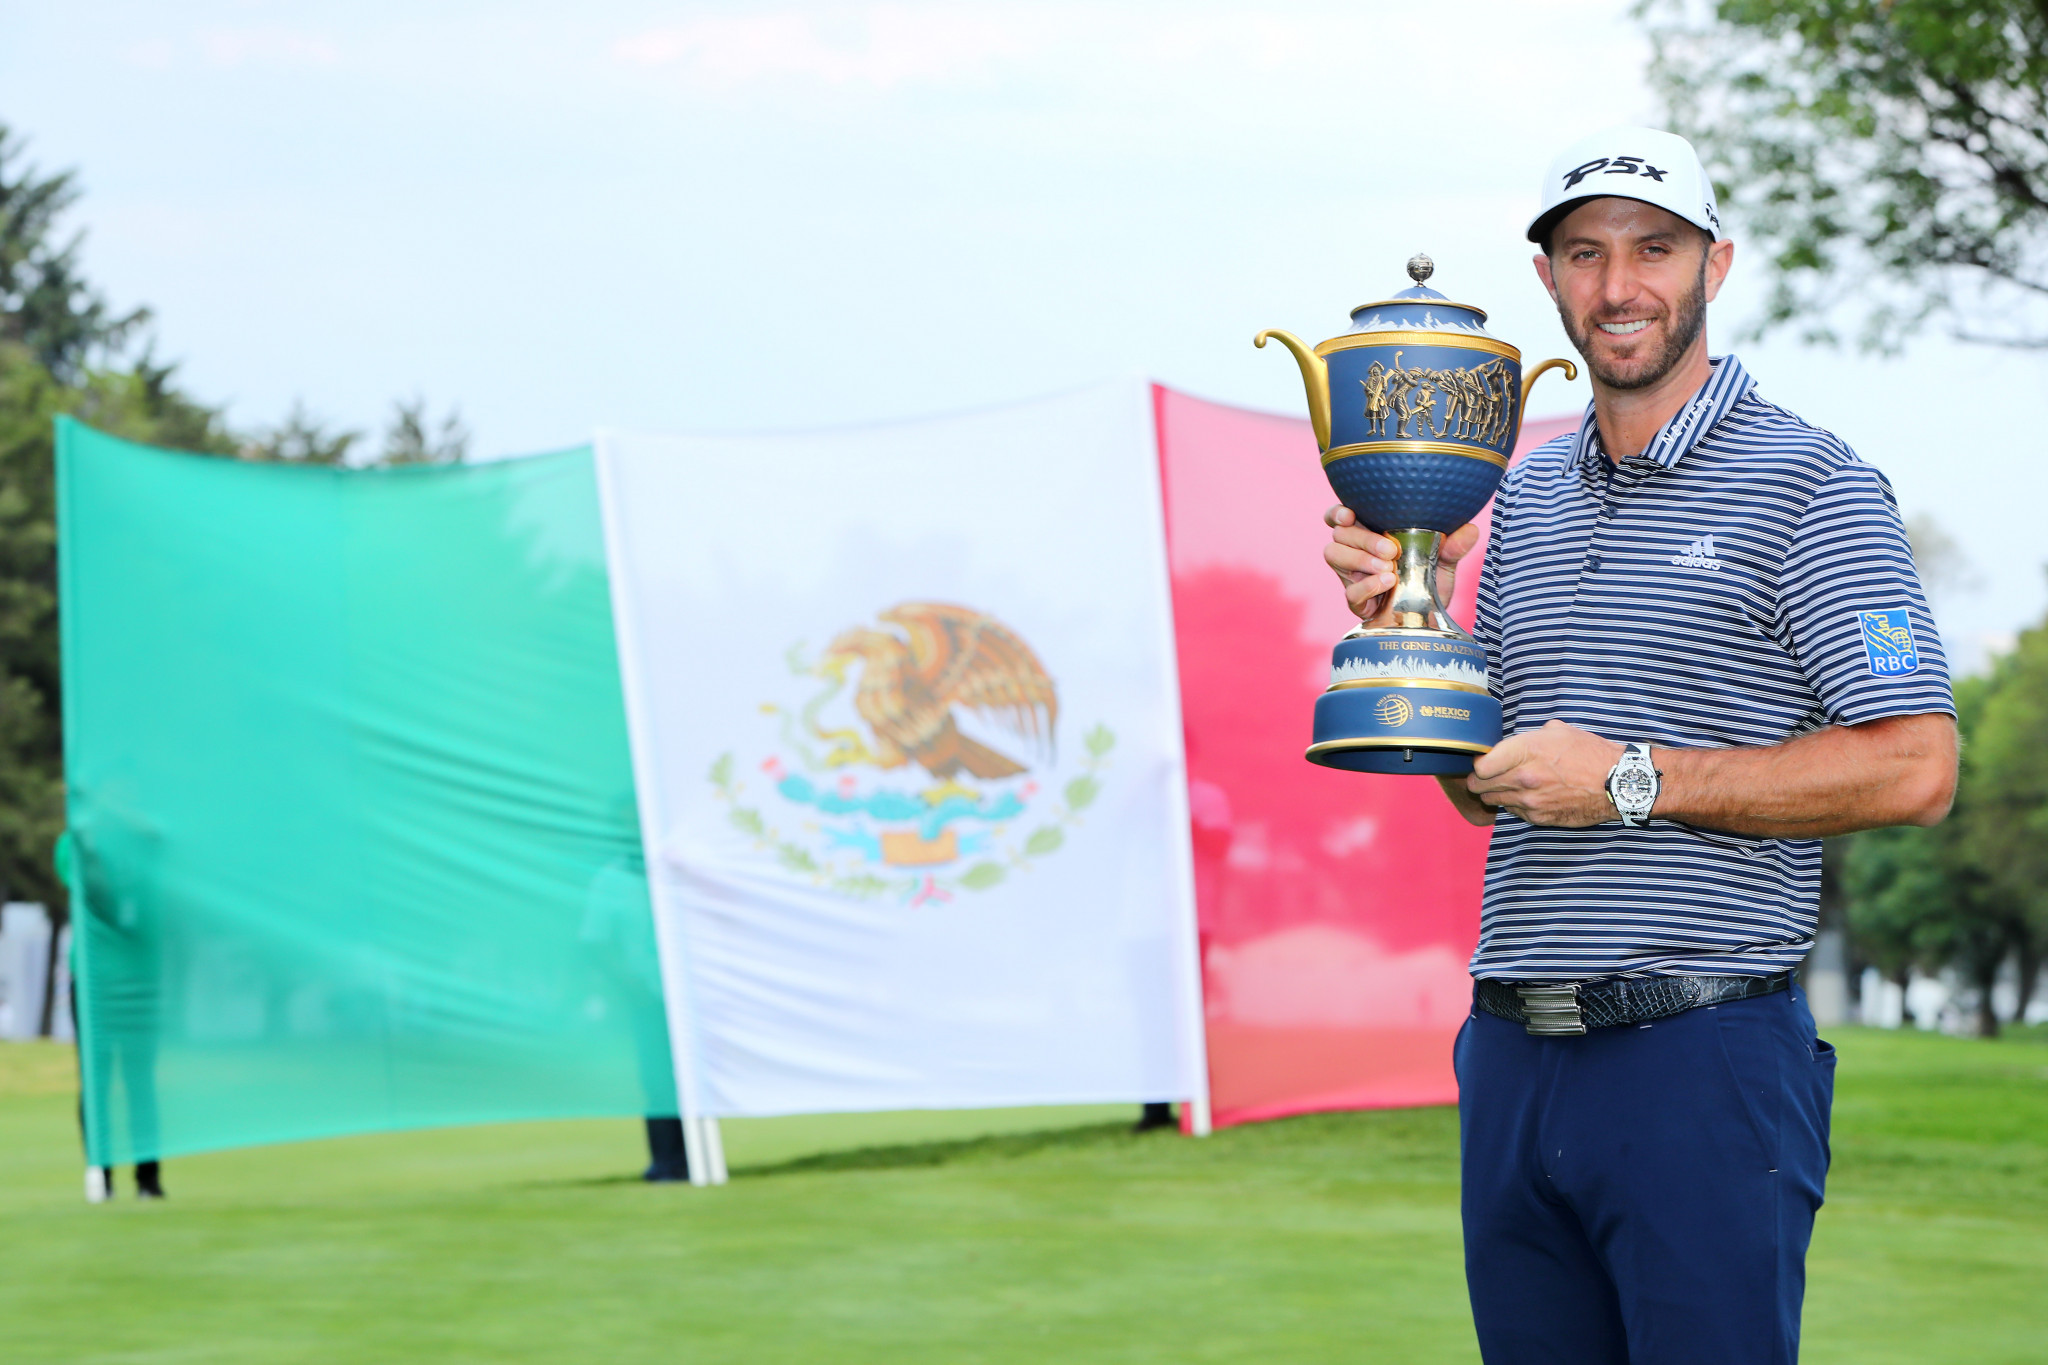 Johnson secures 20th PGA Tour title with victory at WGC-Mexico Championship